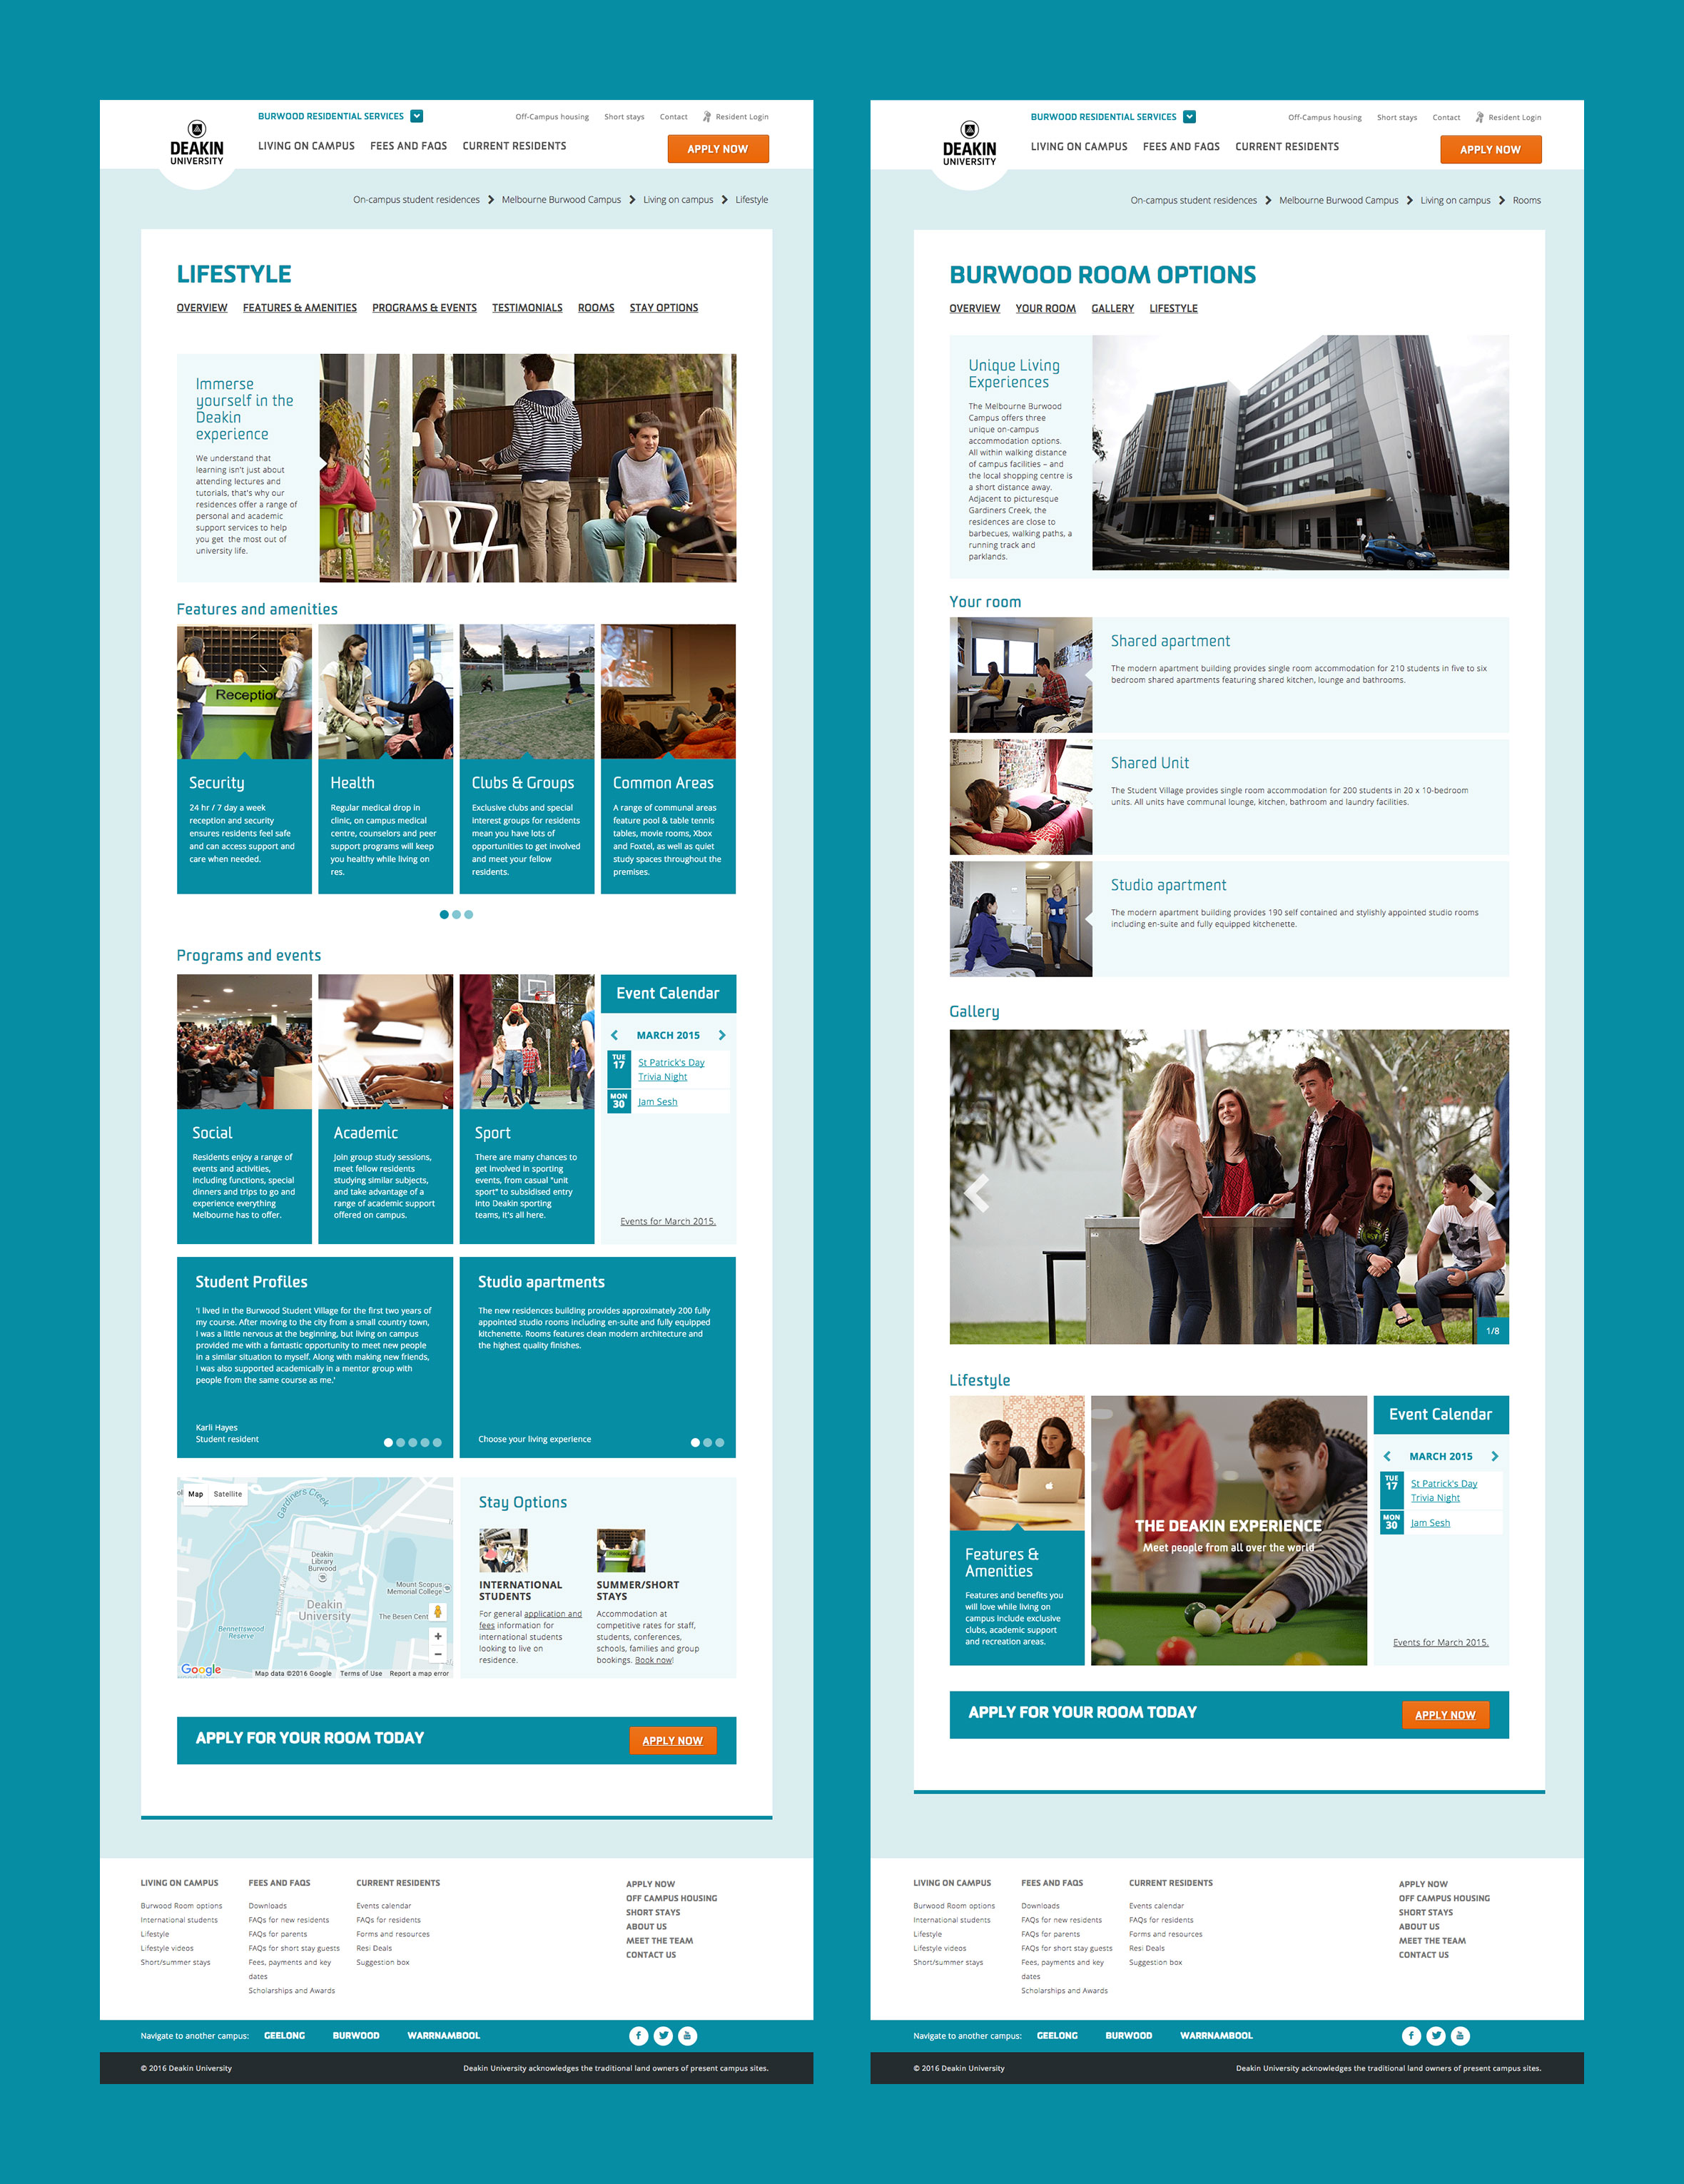 Deakin Residential Services